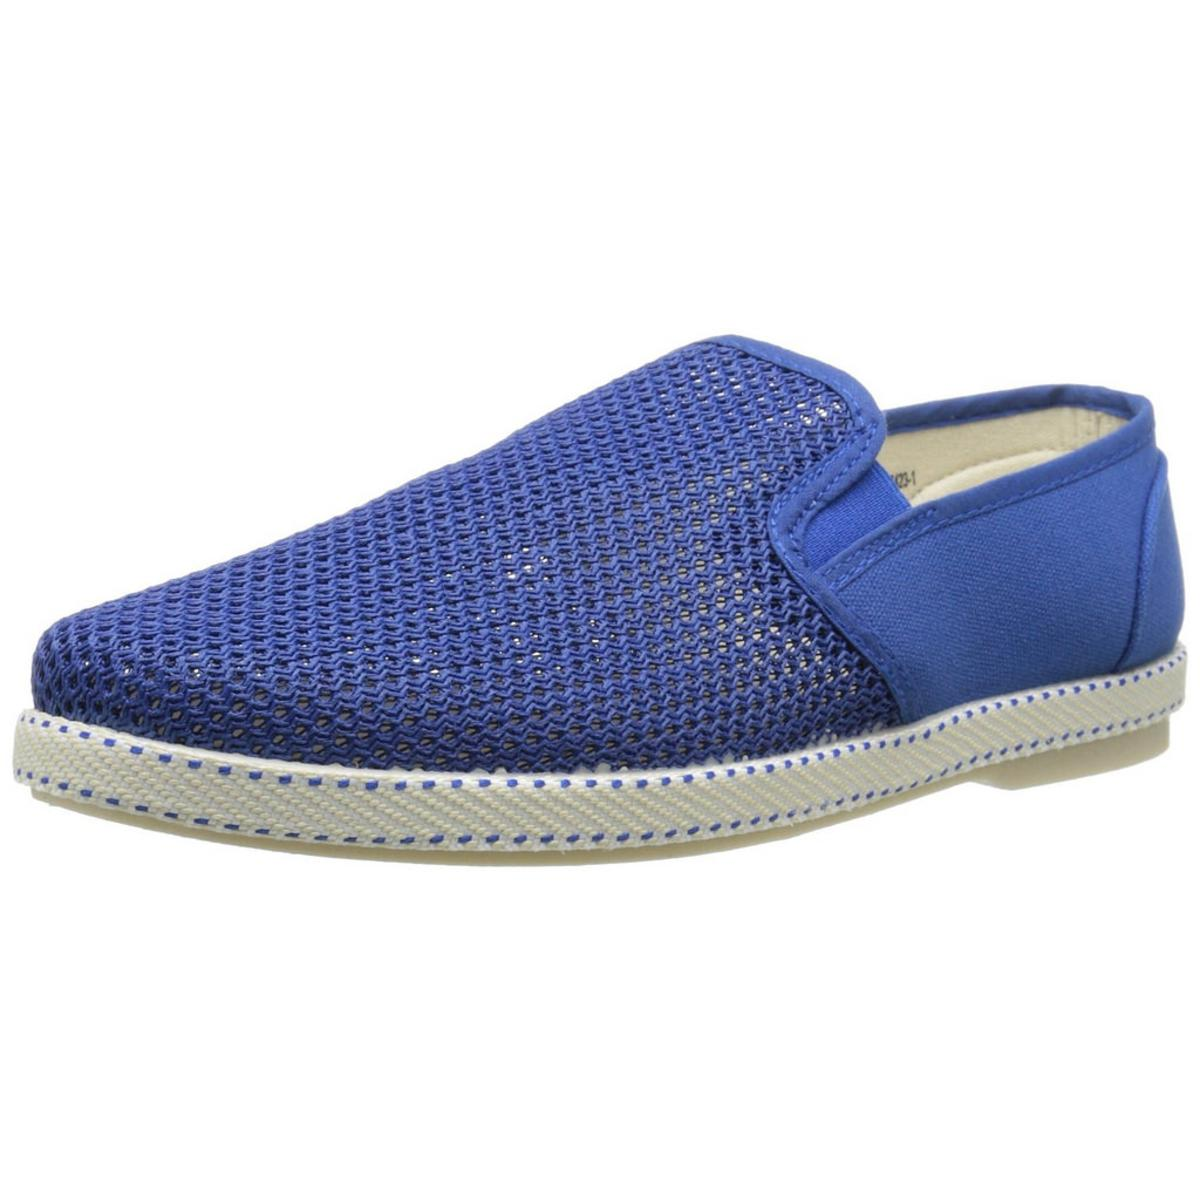 GBX Delt Mens Royal Blue Loafers by GBX